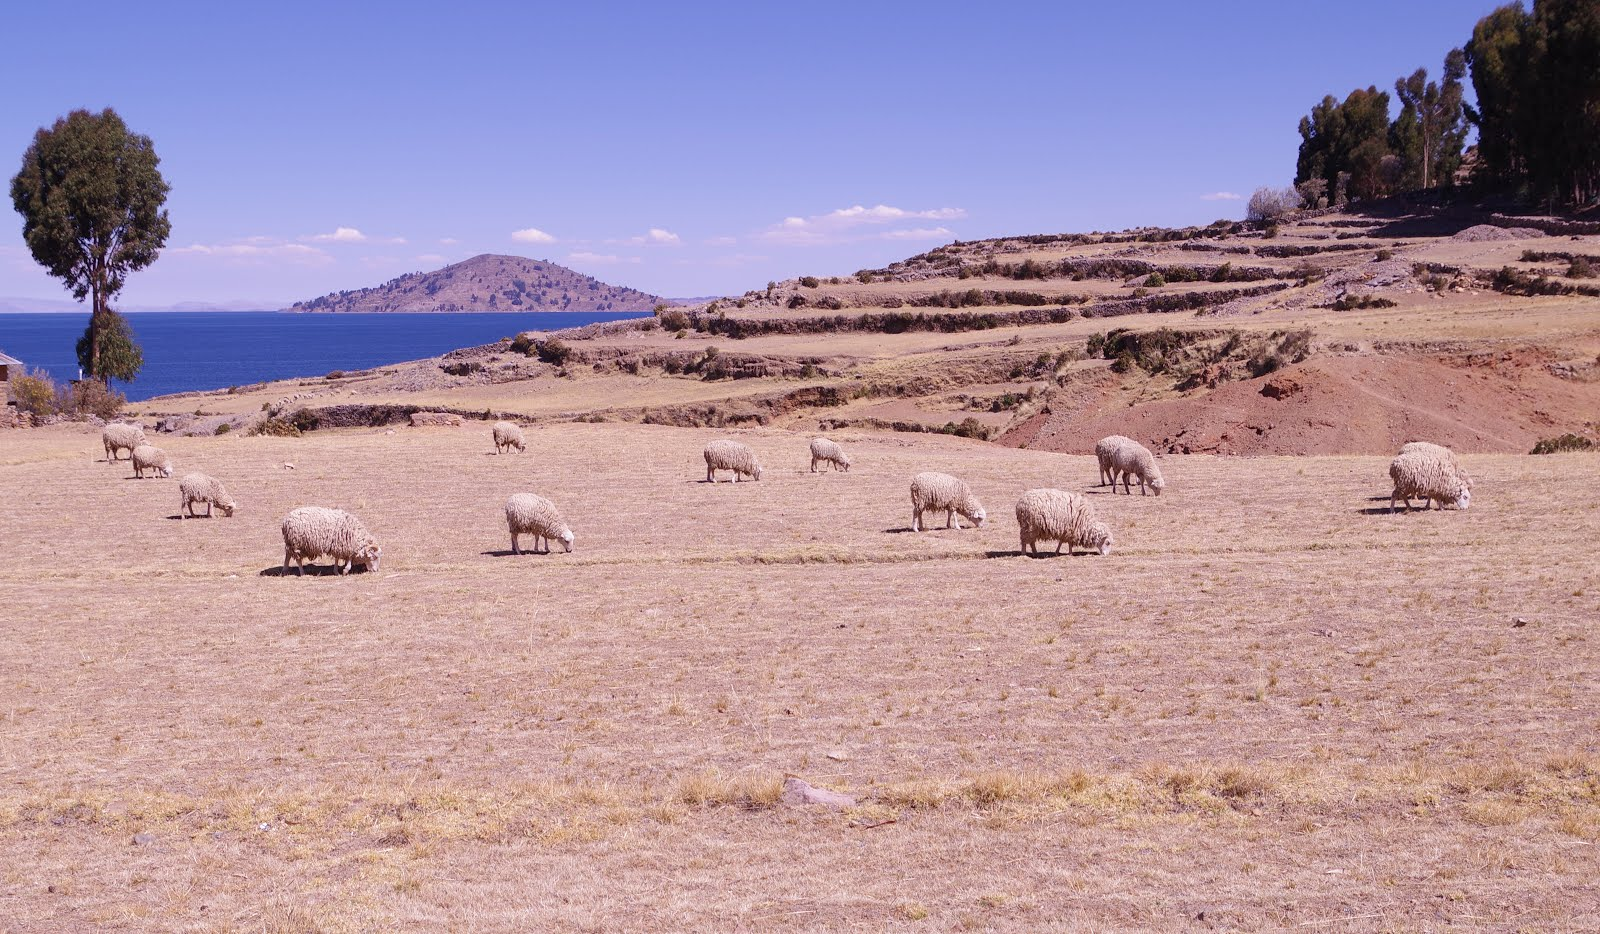 Amantani - Grazing Sheep